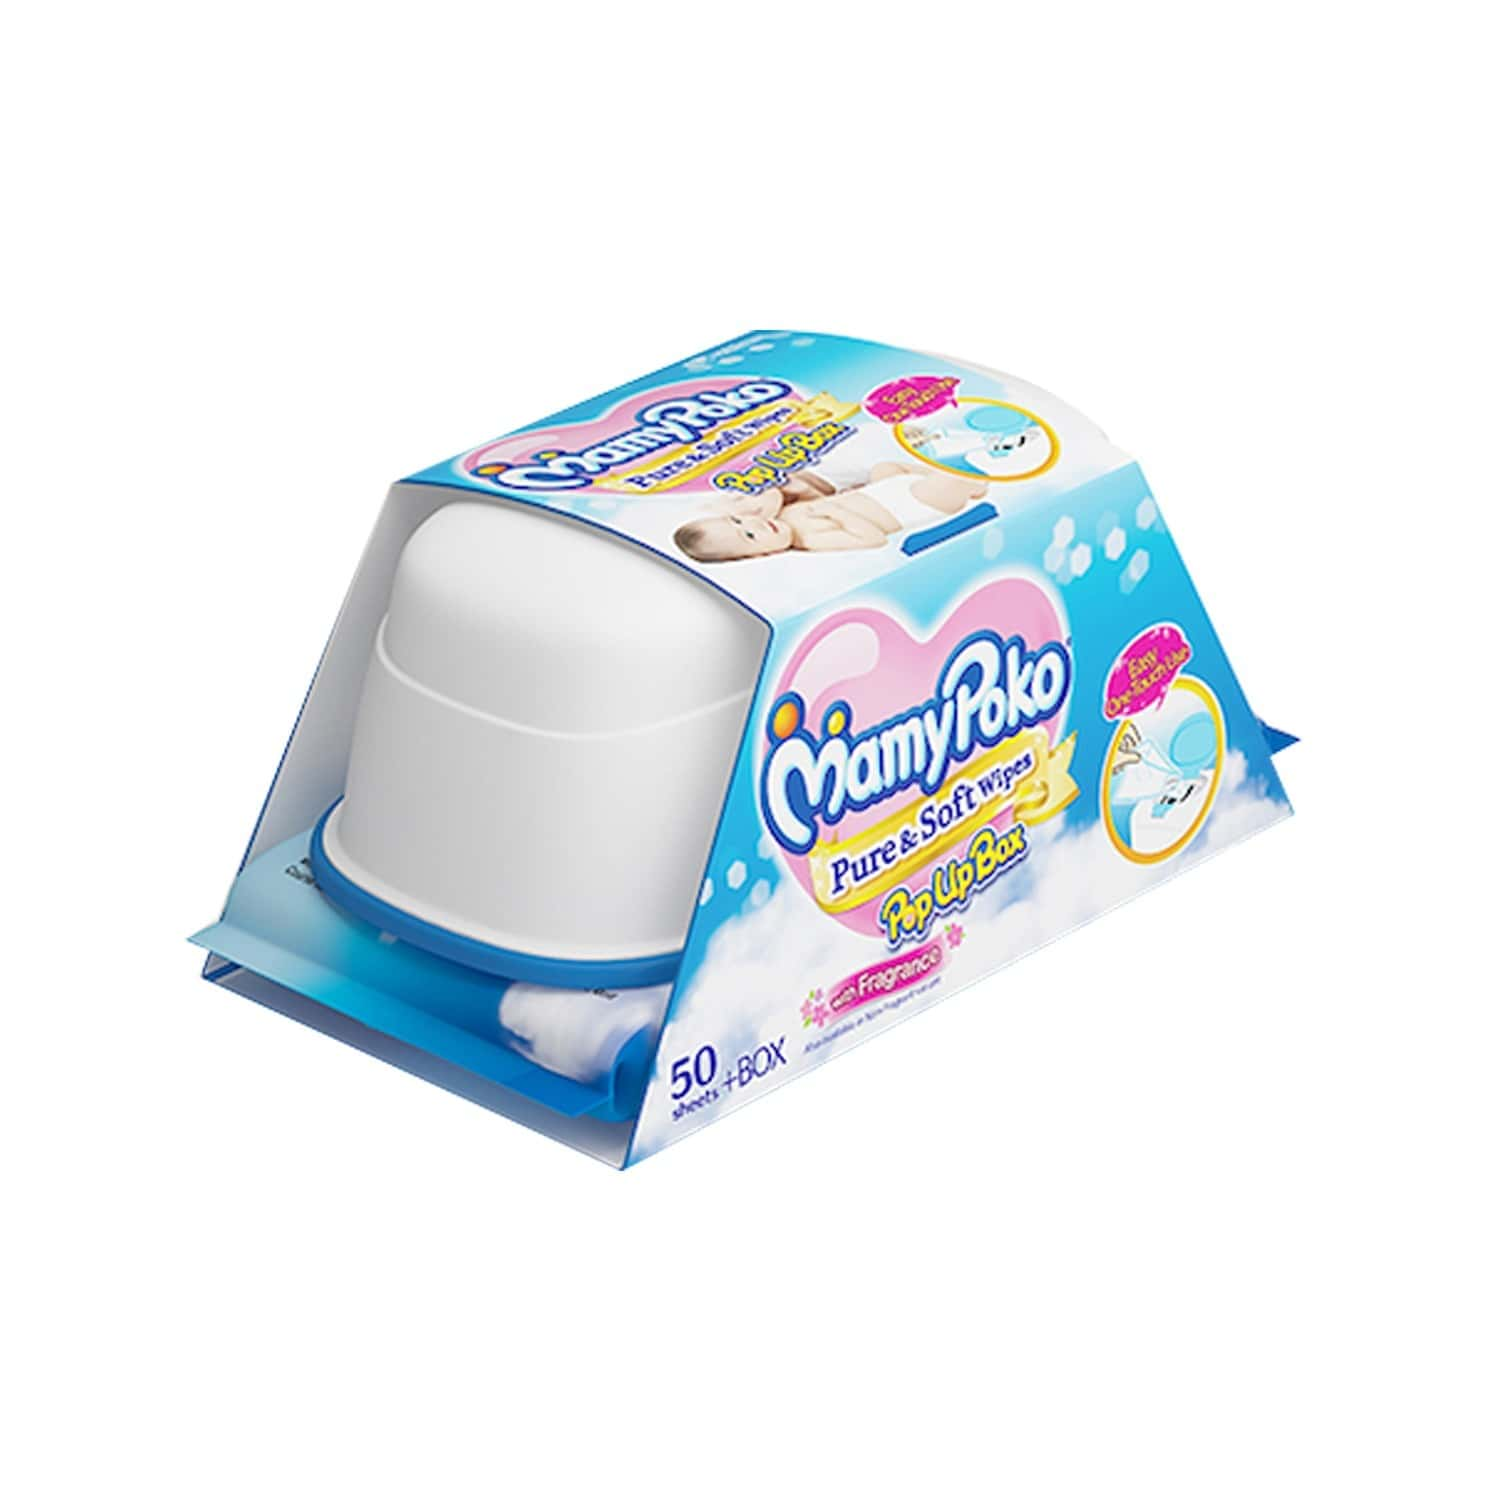 Mamypoko Wipes Pure & Soft With Purified Water And Without Alcohol With Fragrance Pack Of 50 With Pop Up Box